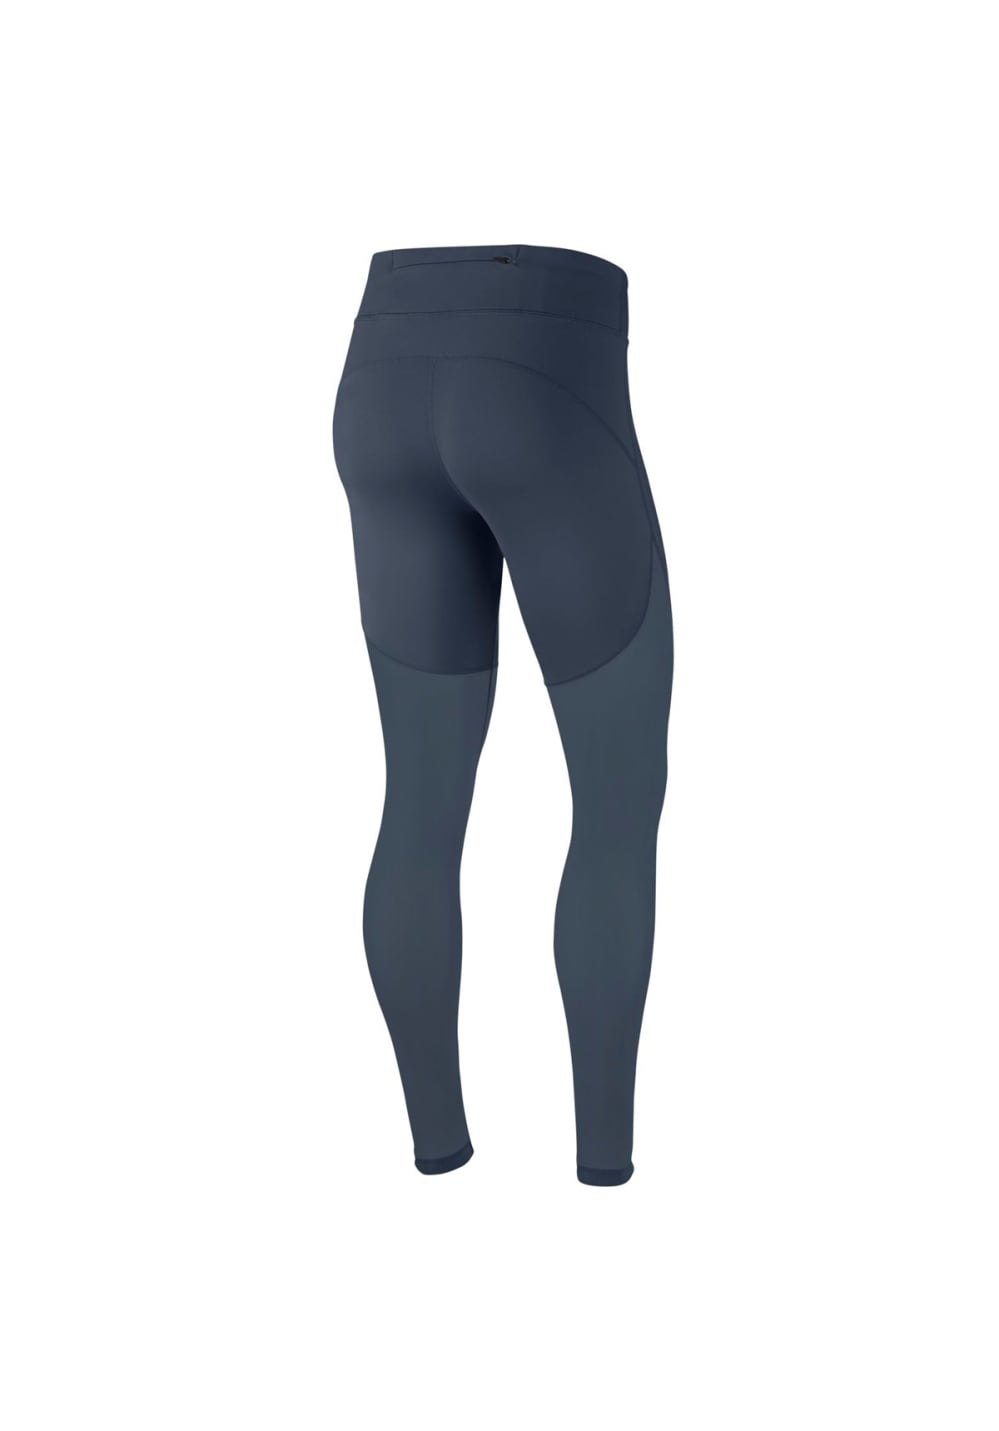 nike-power-epic-lux-running -tights-pantalons-course-femme-bleu-pid-000000000010125169.jpg 46894bd3f33